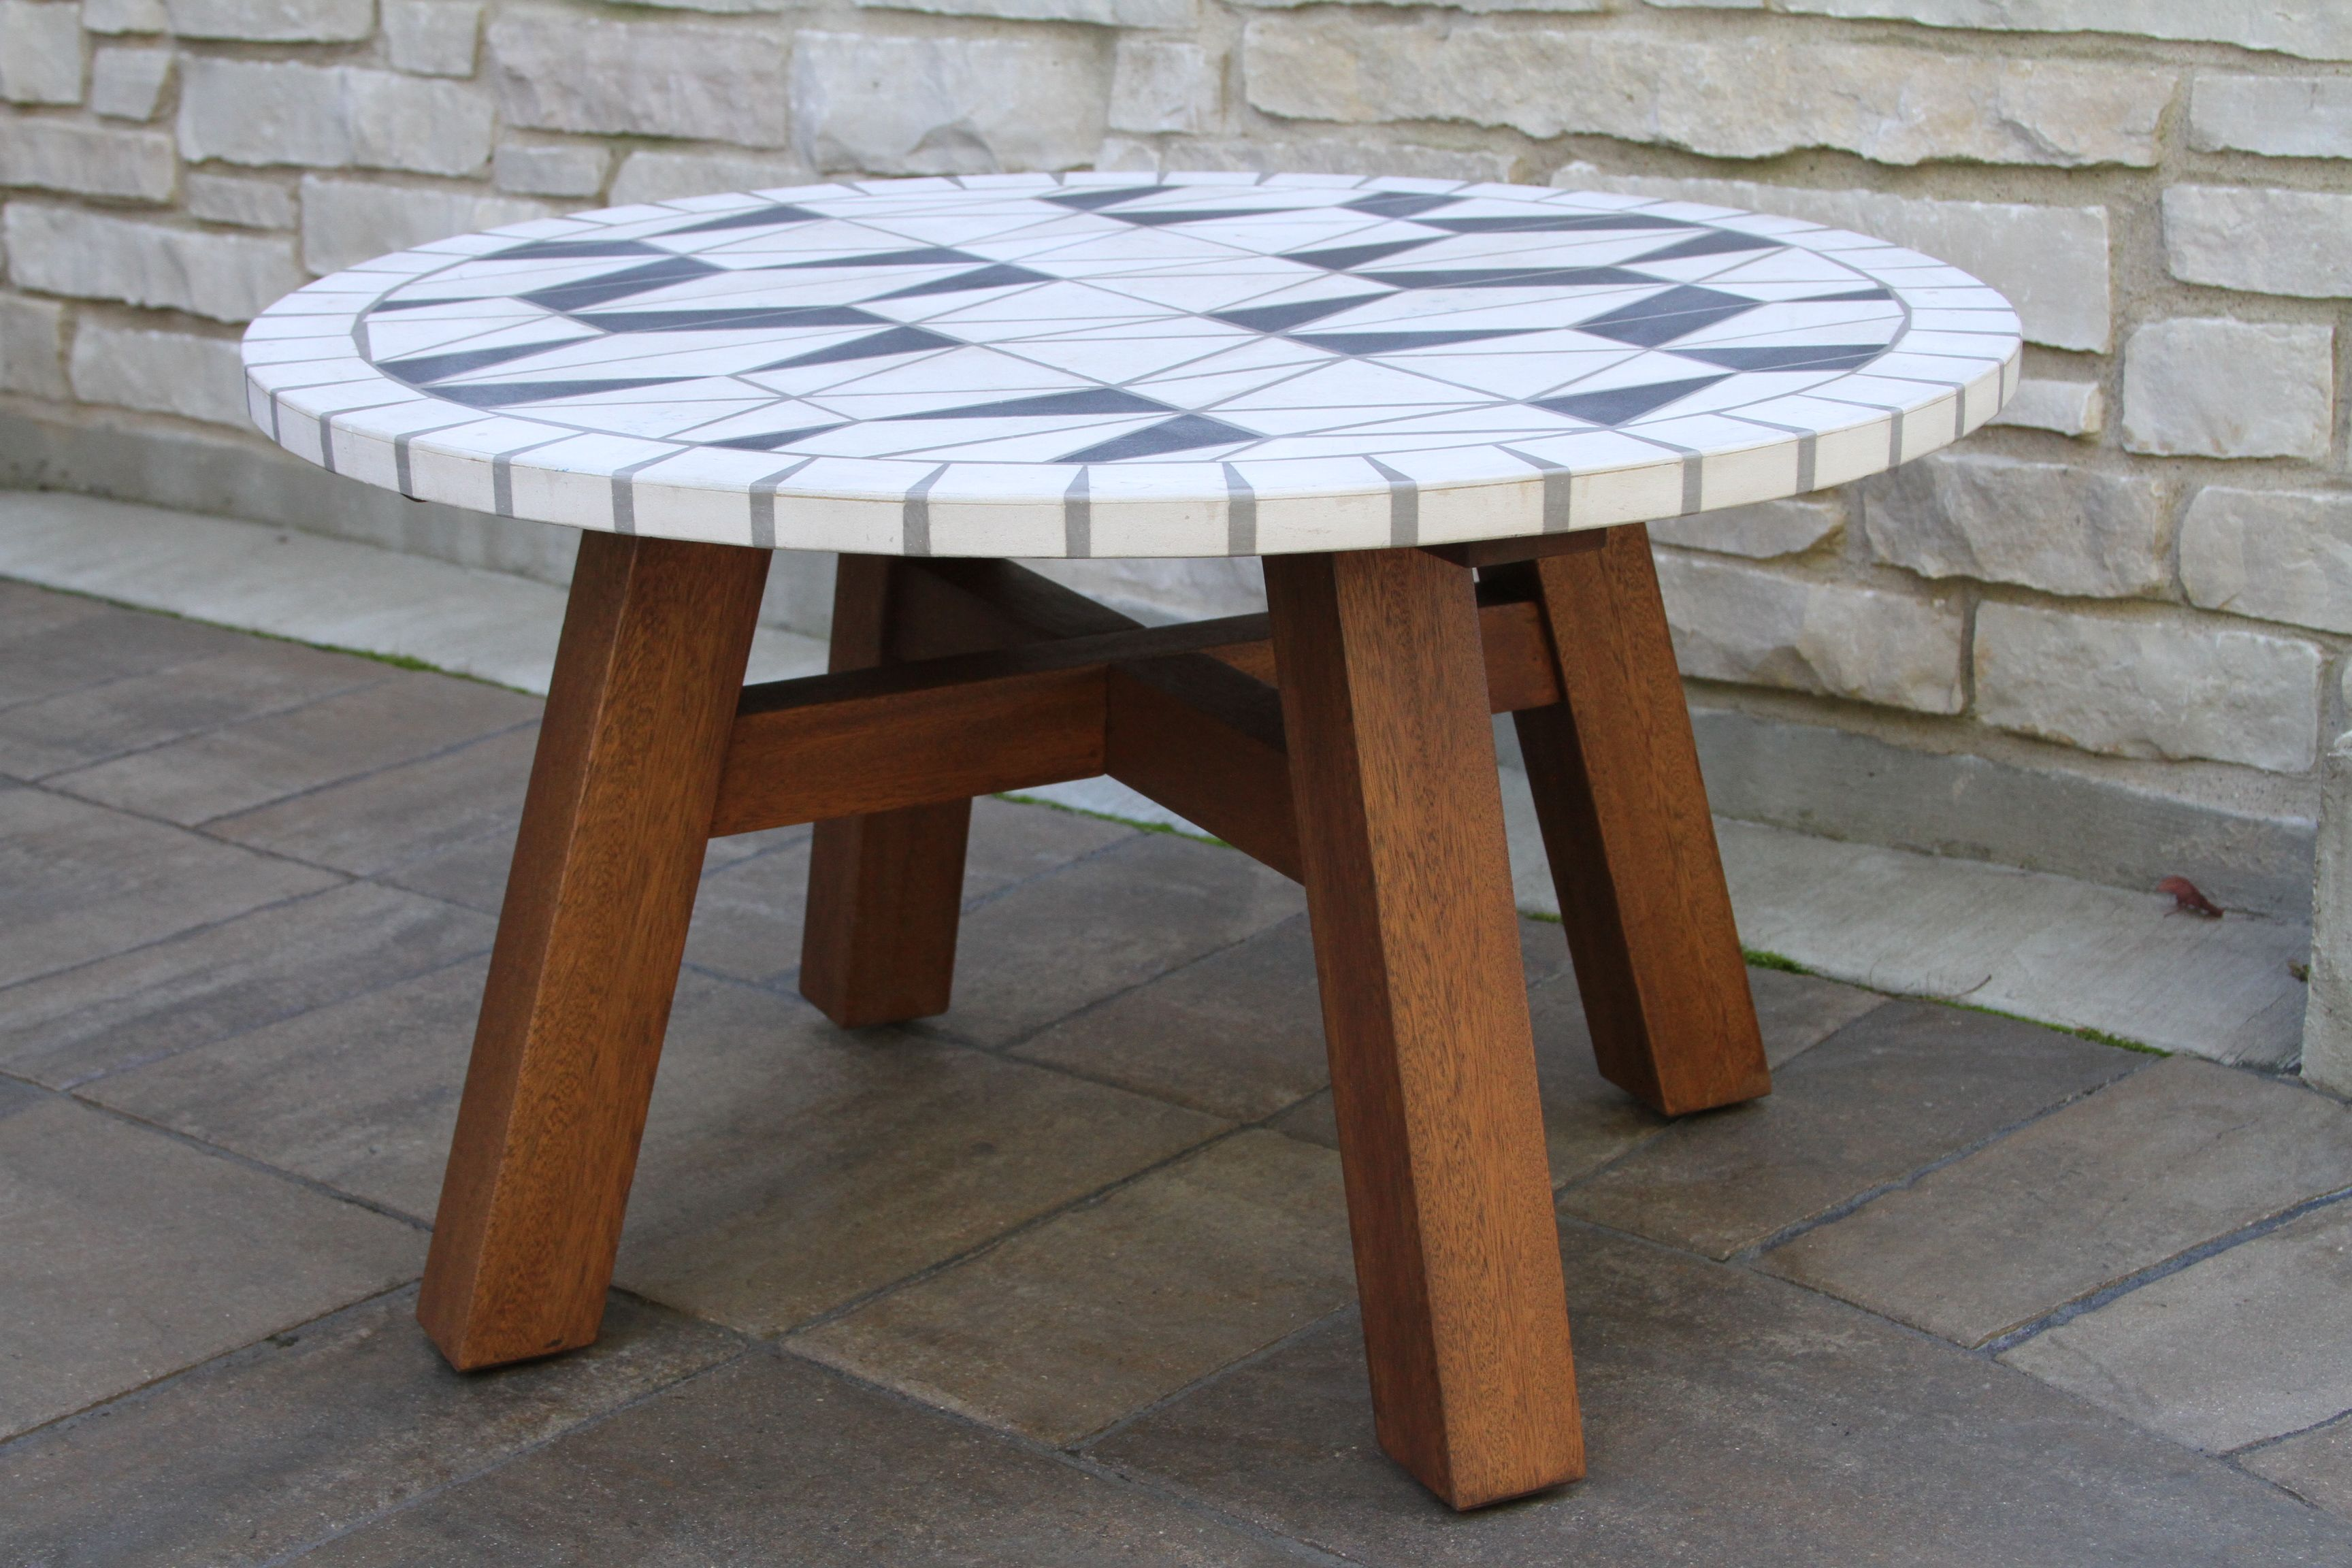 marble mosiac eucalyptus chat table decorative stone accent teak wood nook small round patio cover west elm track order cute side tables outdoor chairs for balcony sauder shoal